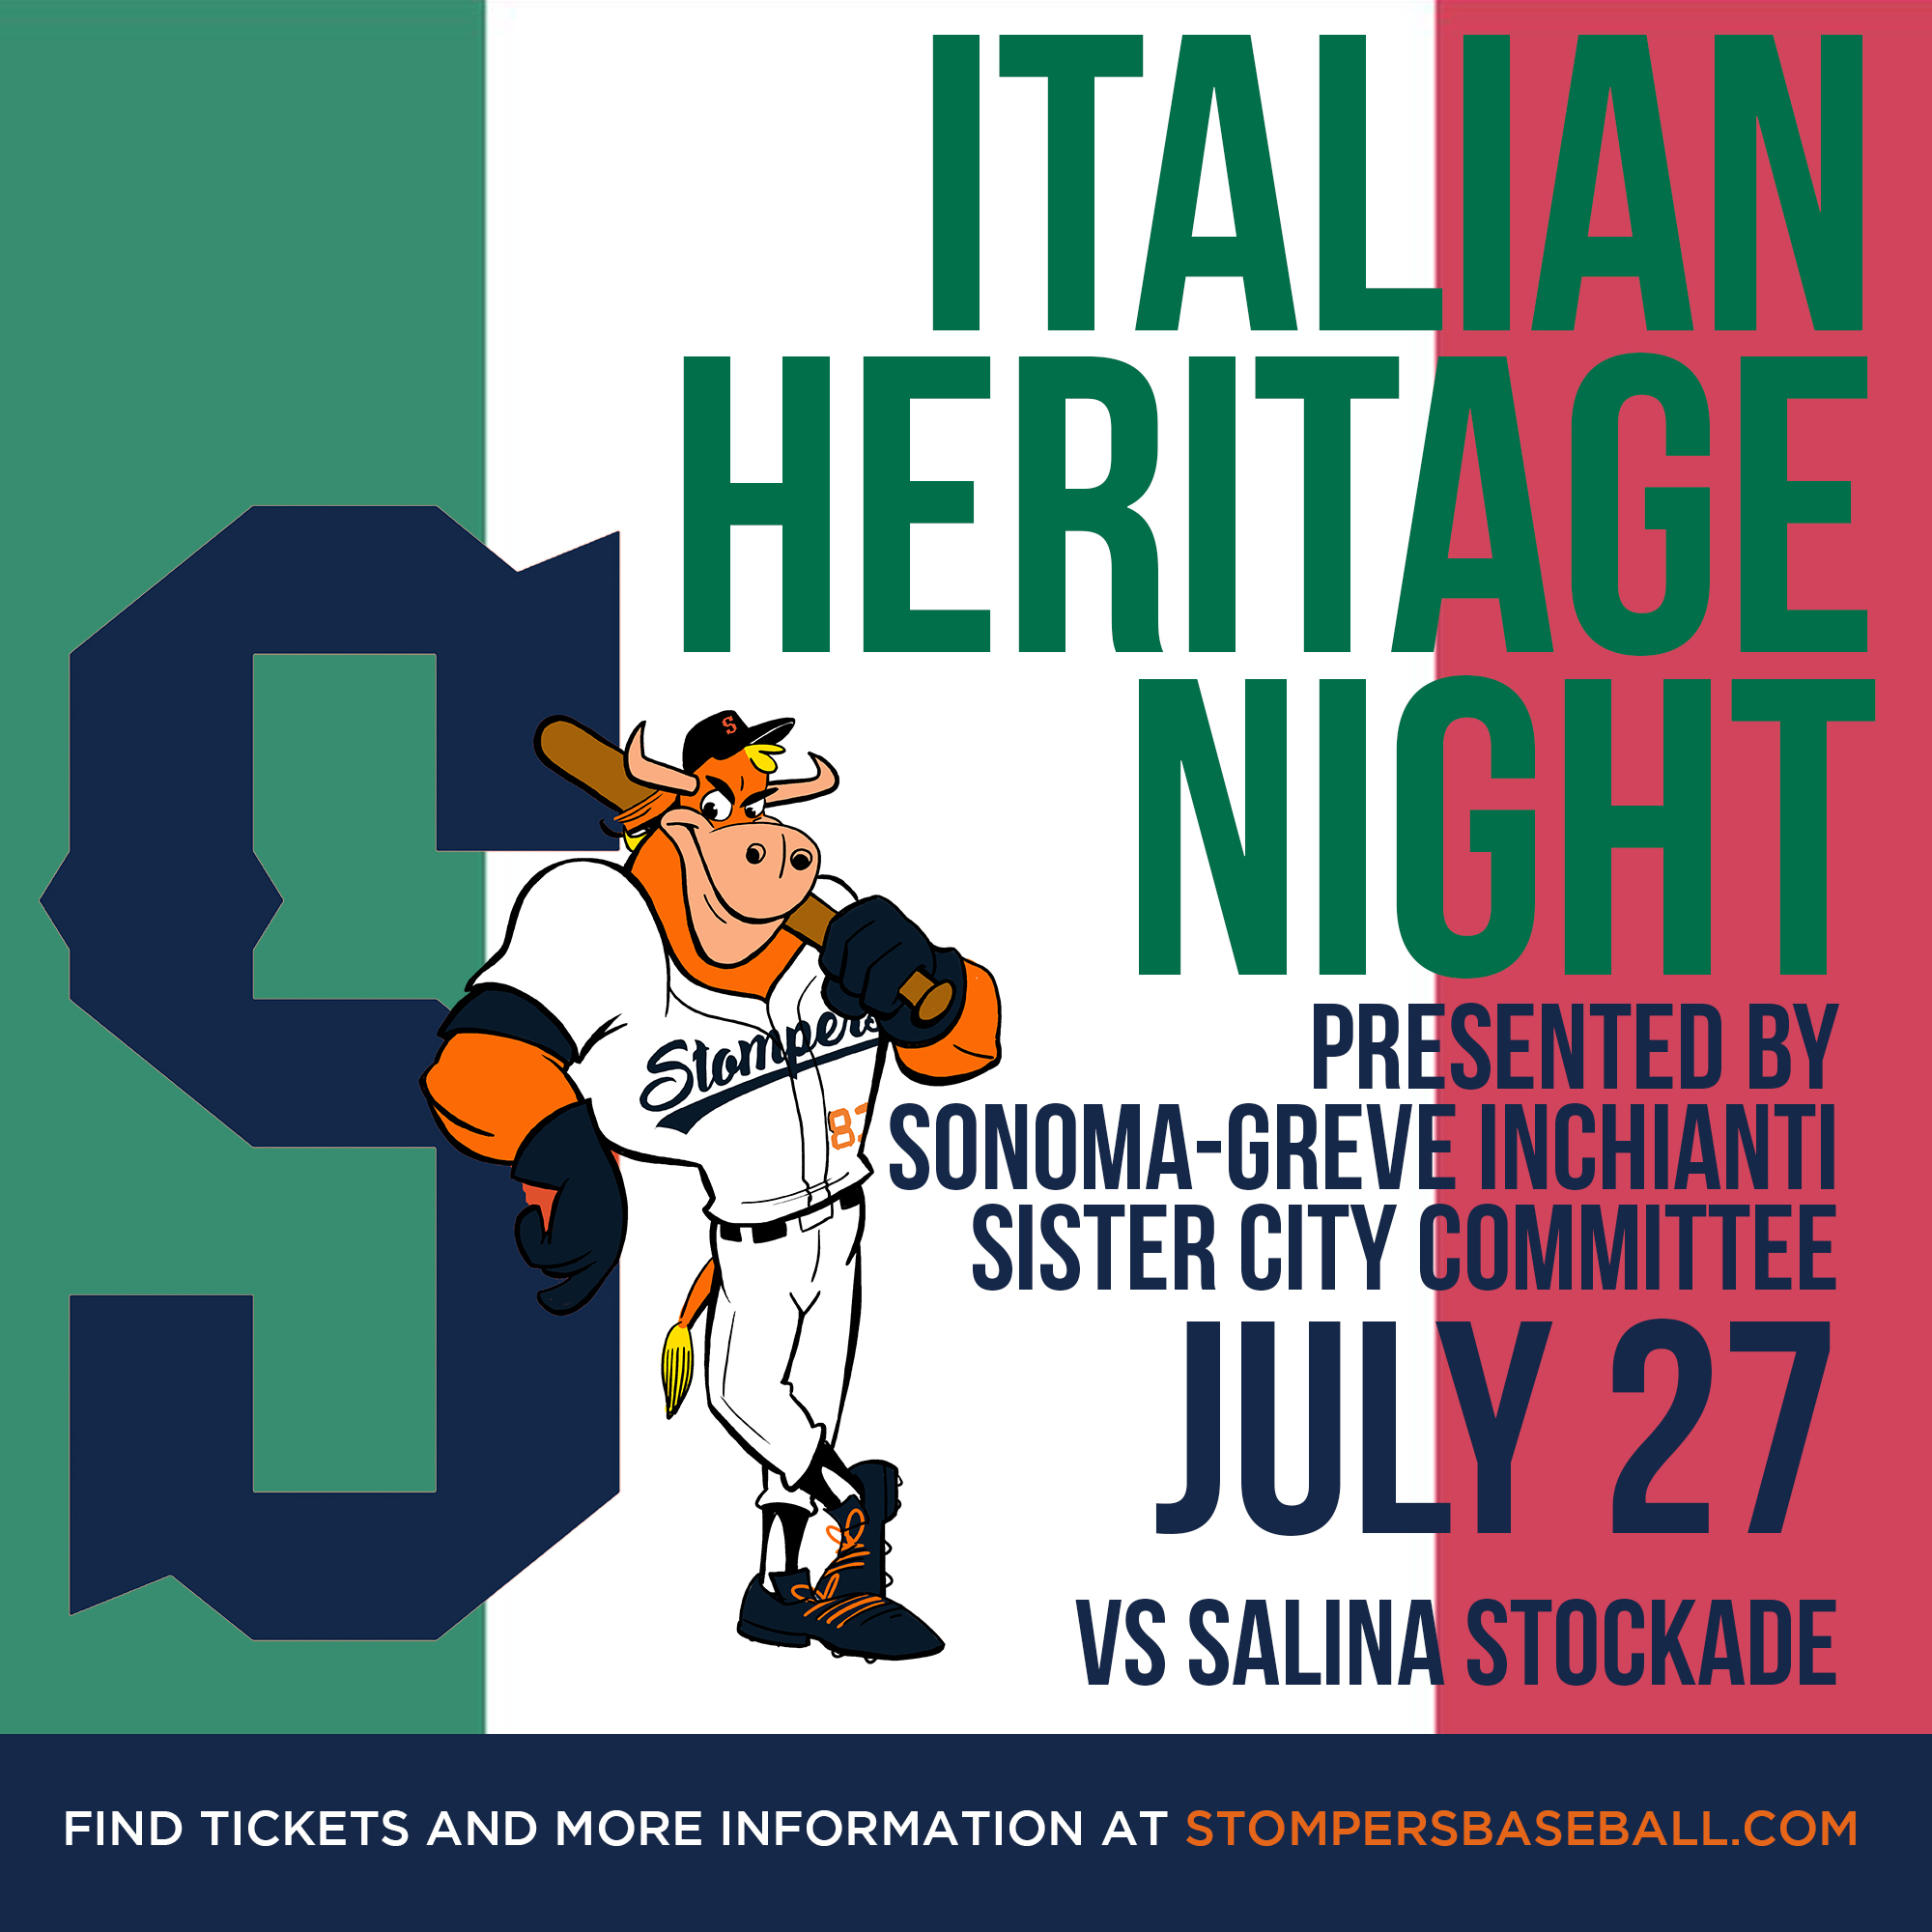 July 27: Italian Heritage Night - Come out for Italian Heritage Night presented by Sonoma Greve! We will have special fun and games for our fans!